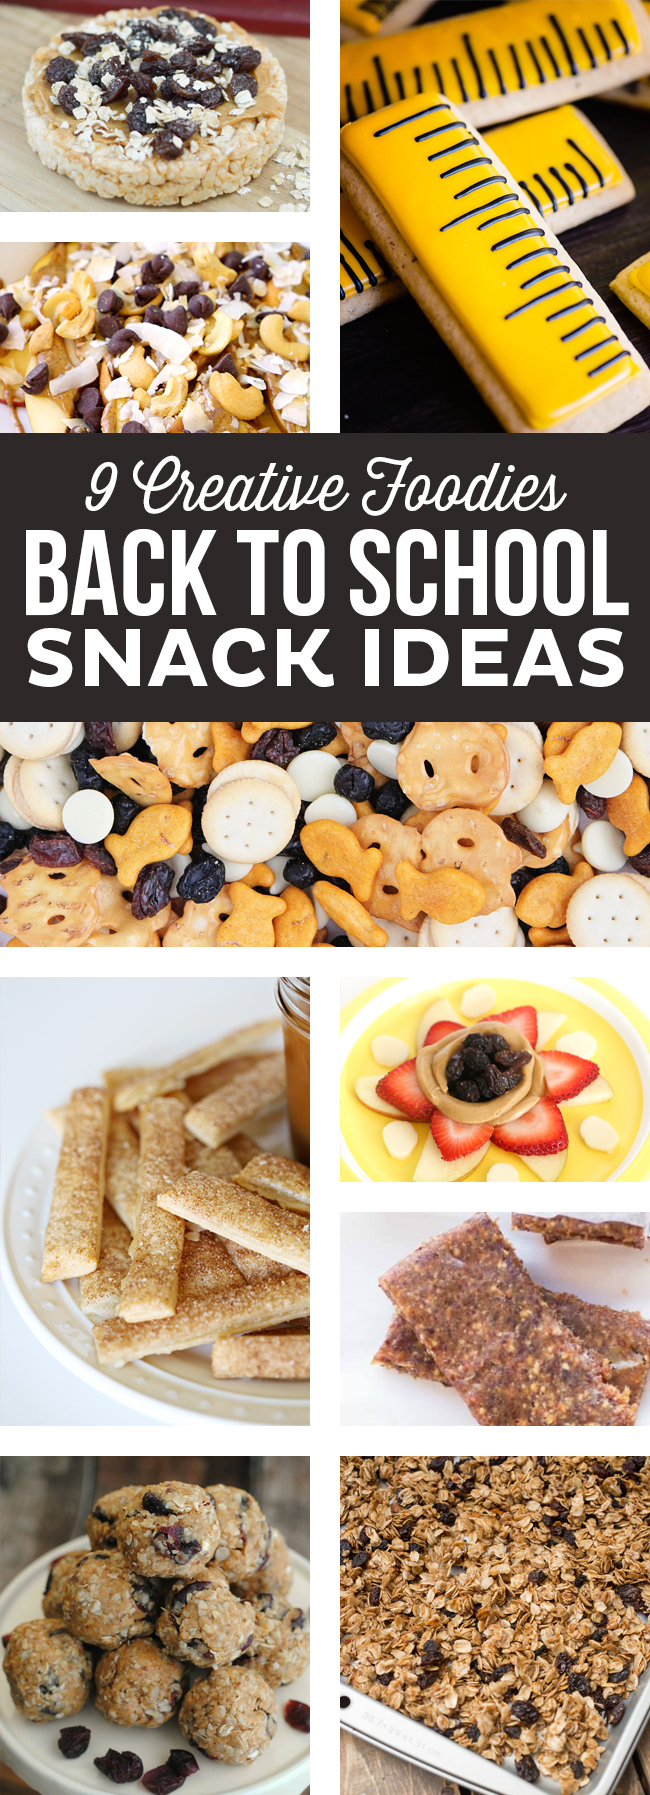 http://printablecrush.com/wp-content/uploads/2016/07/Creative-Foodies-Back-toSchool-1.jpg